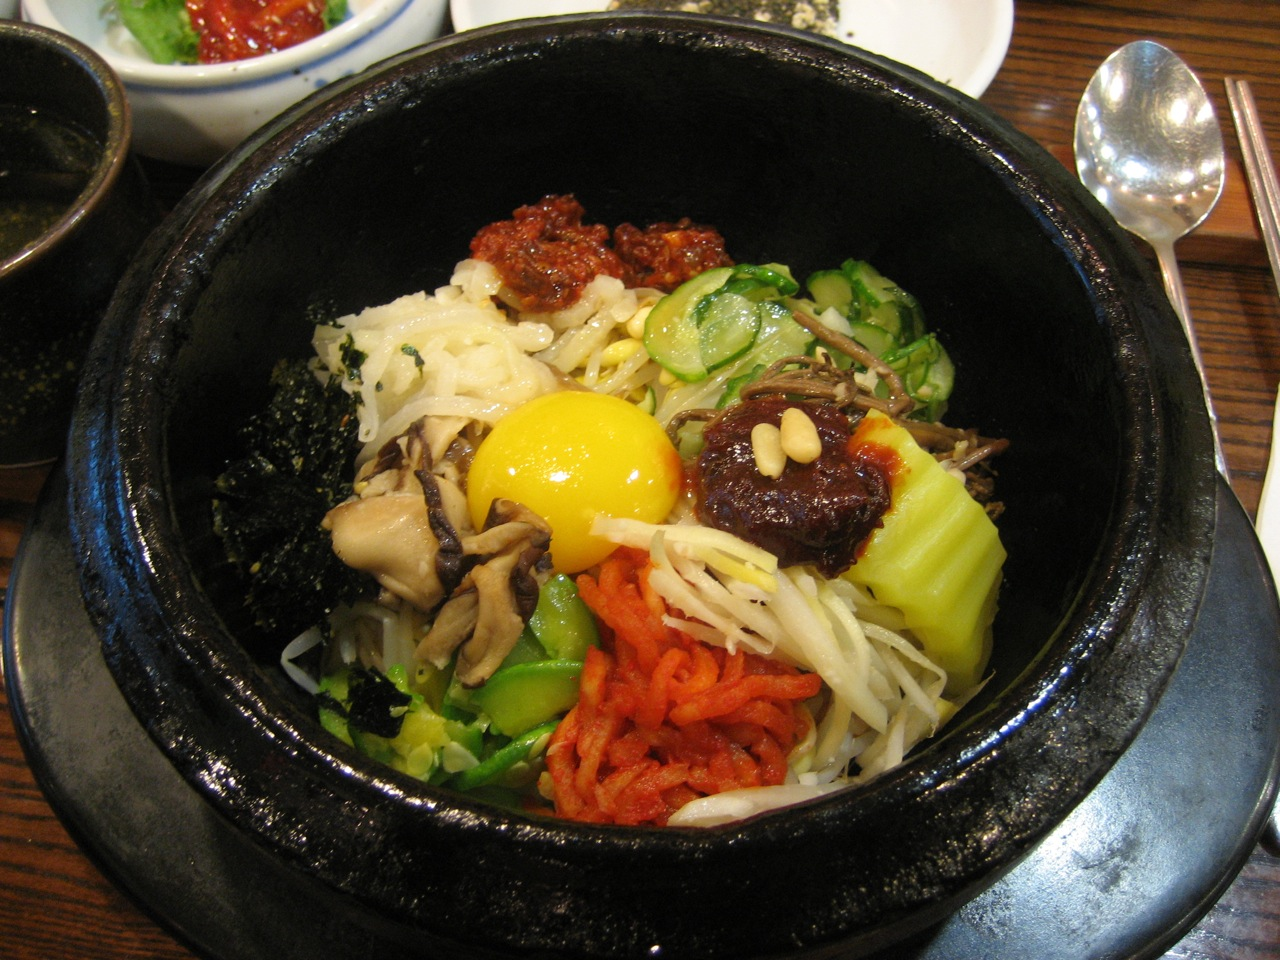 File:Korean cuisine-Bibimbap-08.jpg - Wikipedia, the free encyclopedia